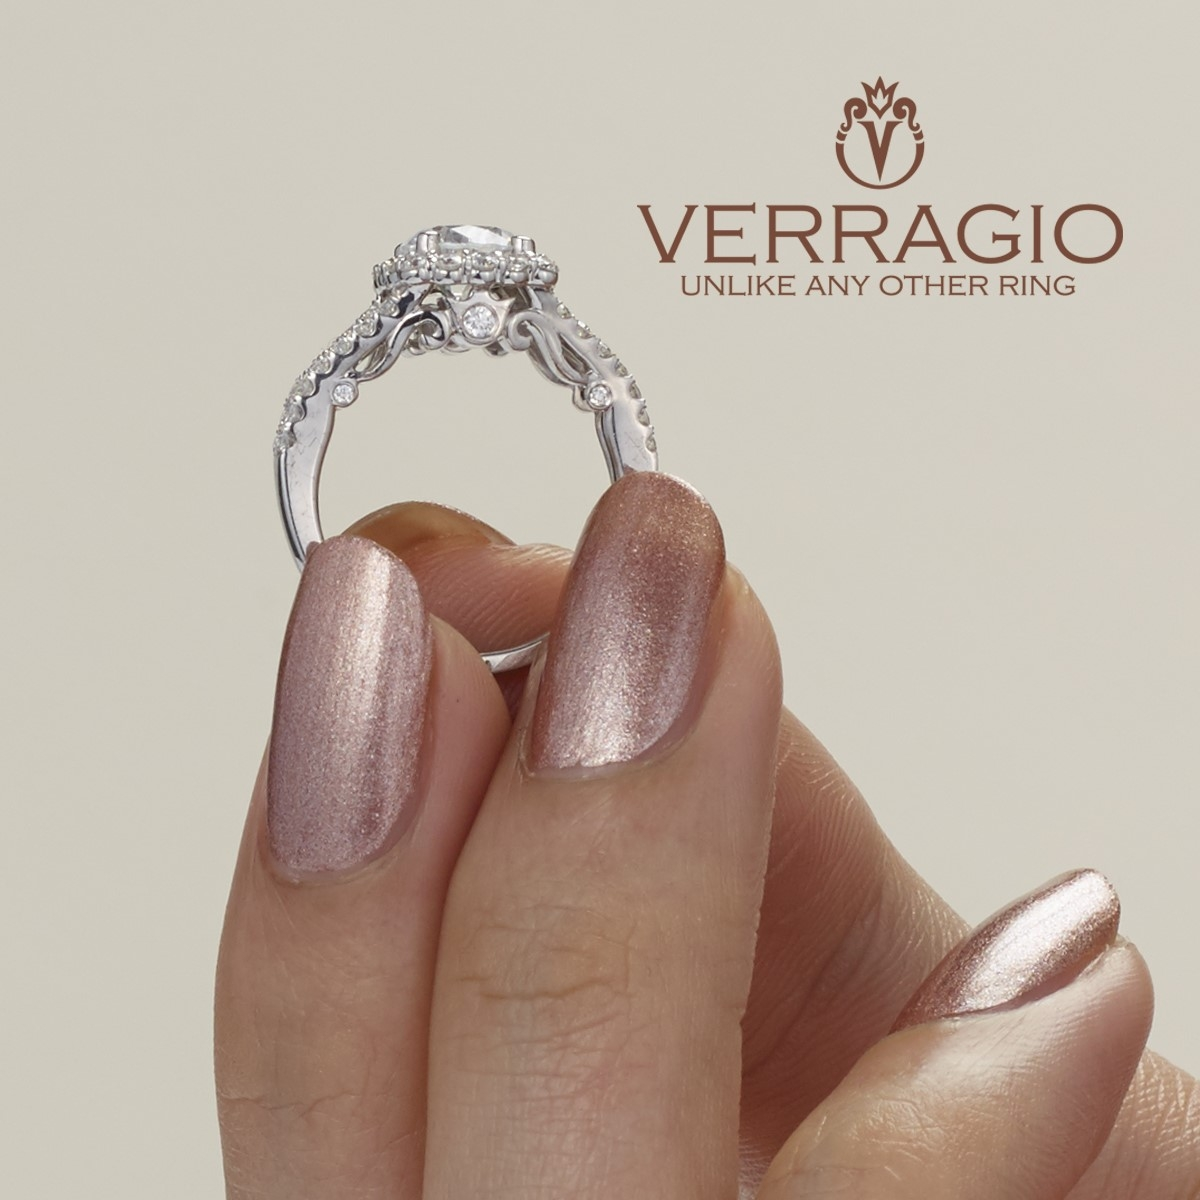 Verragio 18 Karat Insignia Engagement Ring INS-7046 Alternative View 2